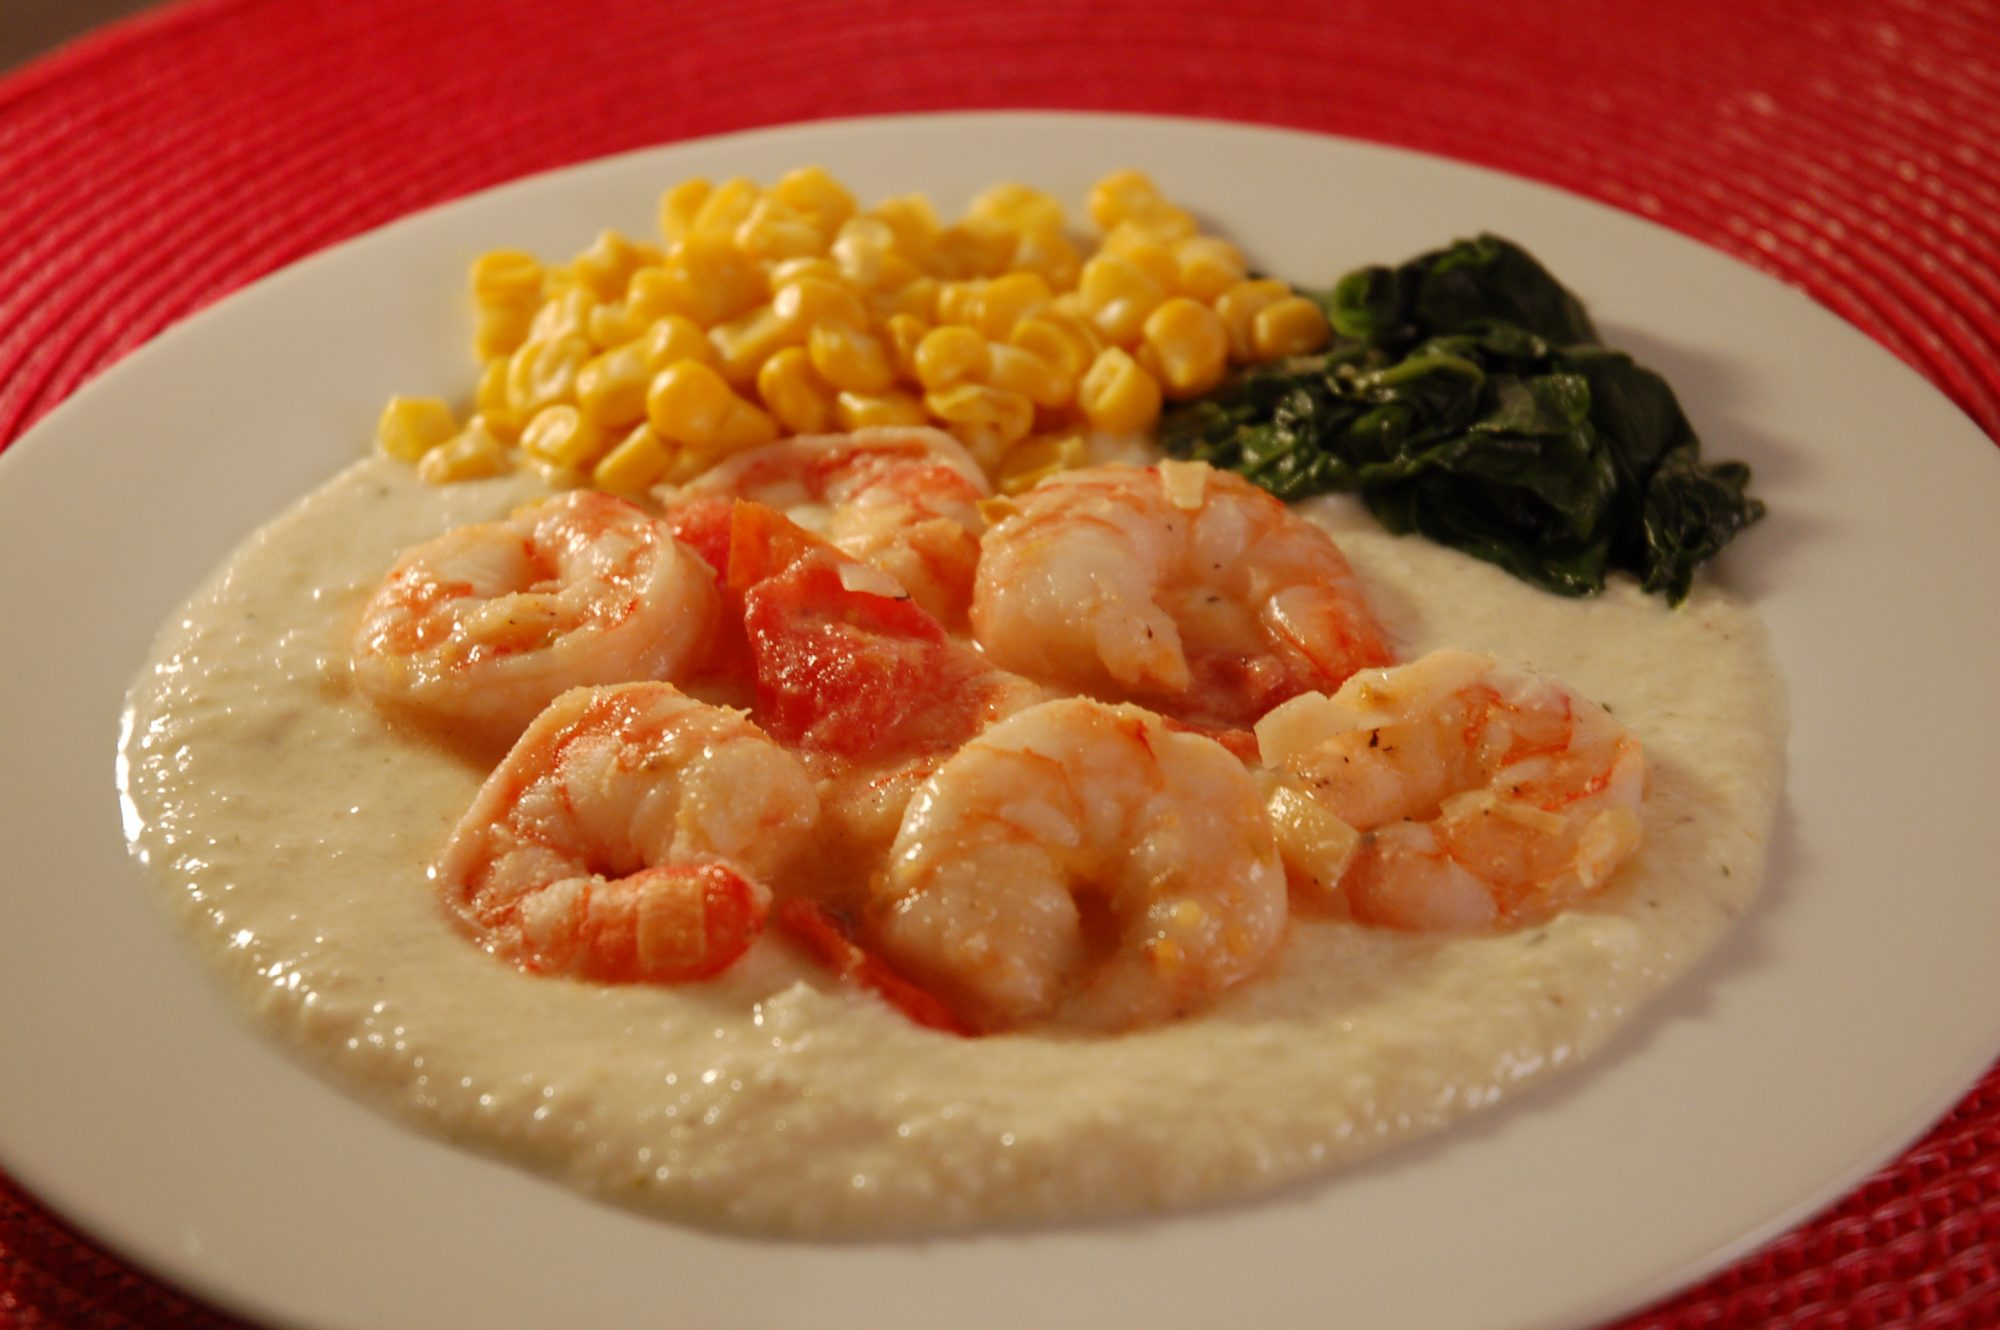 """How Lowcountry can you go? Shelled shrimp are sauteed with diced tomato in olive oil and butter and served over garlic cheese grits. """"This is the best and easiest shrimp and grits recipe!"""" says Carol. """"I have also added andouille sausage sometimes for a different flavor excellent."""""""